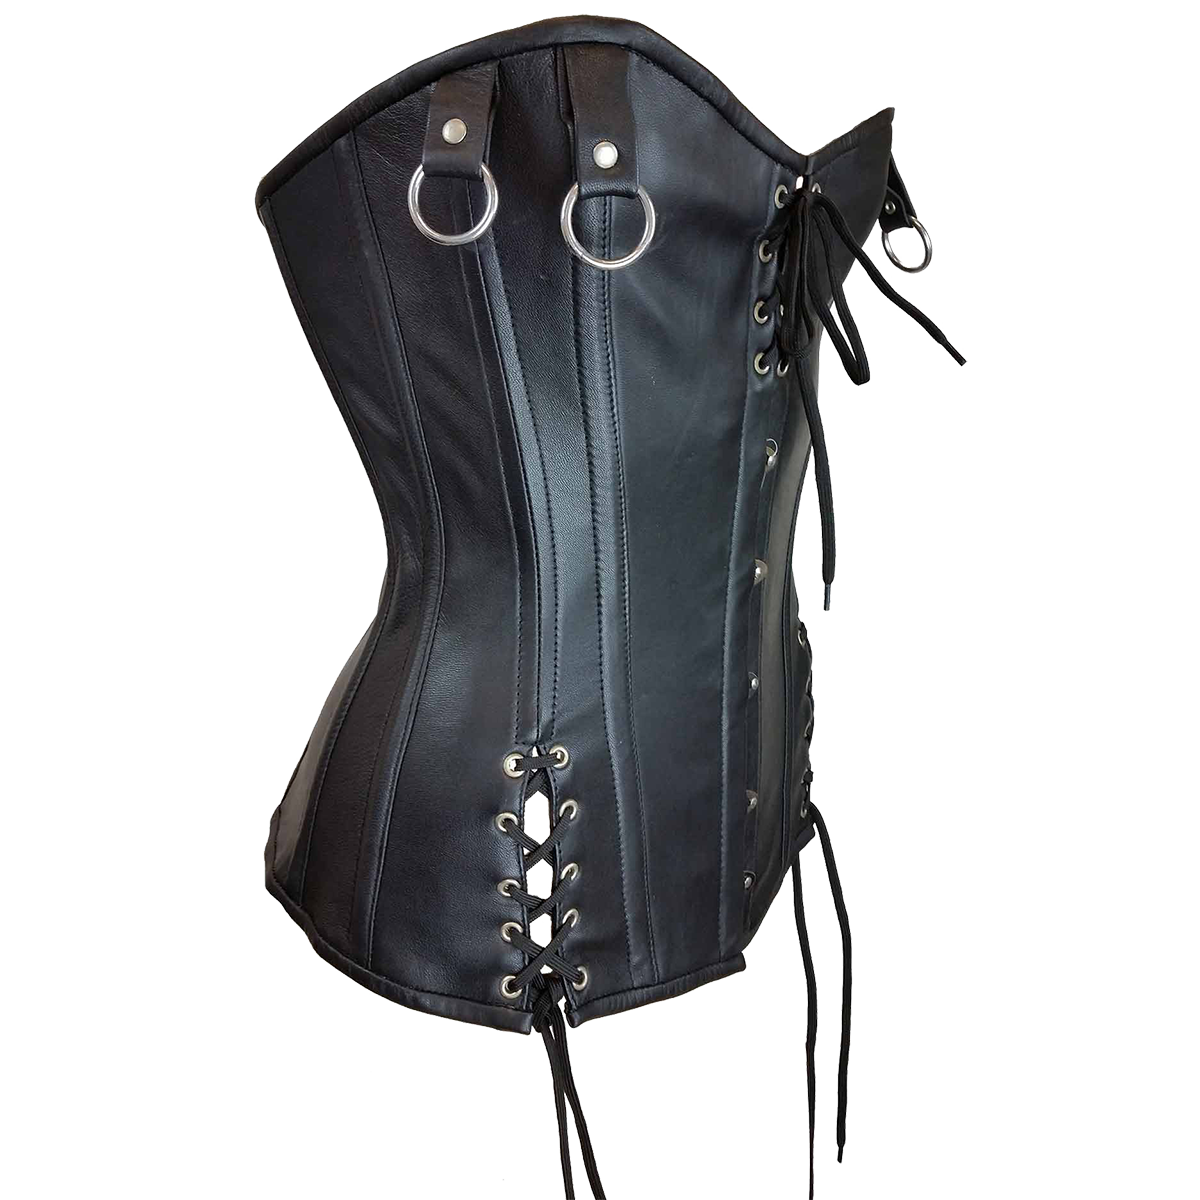 0c61e56316 ... VC1321 Vance Leather Ladies Laced Top and Sides Corset with Hook and  Eye Closure